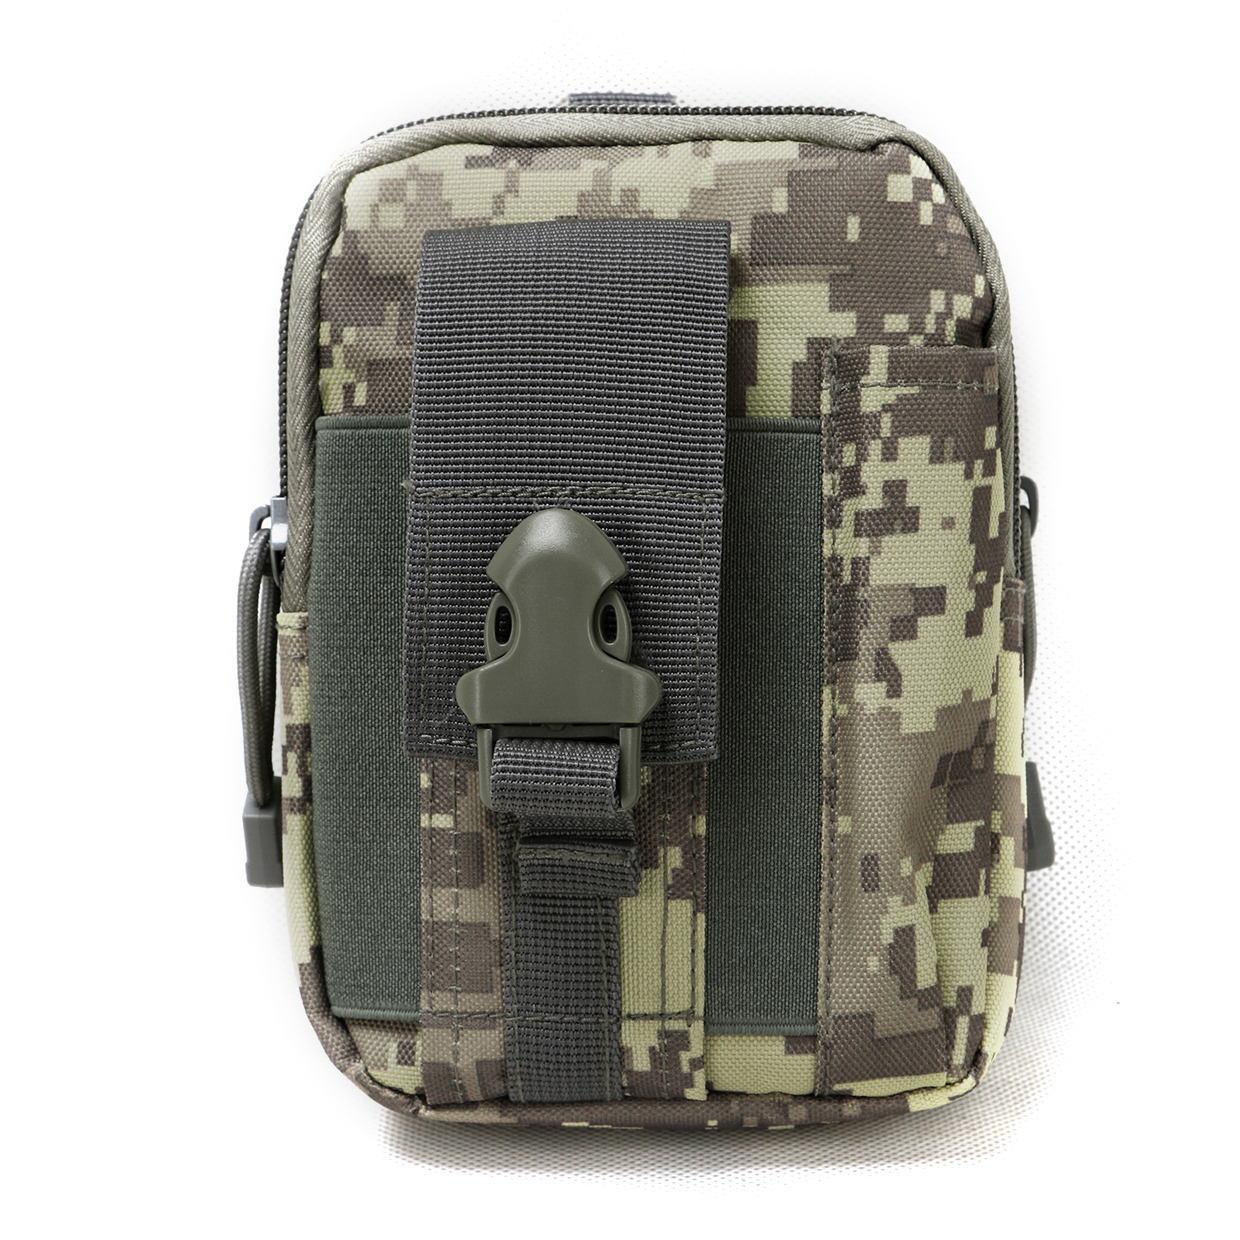 d00c057872b958 Details about Tourbon Camo Molle Pouch Belt Waist Bag Fanny Pack Phone  Carry Tool Case Outdoor